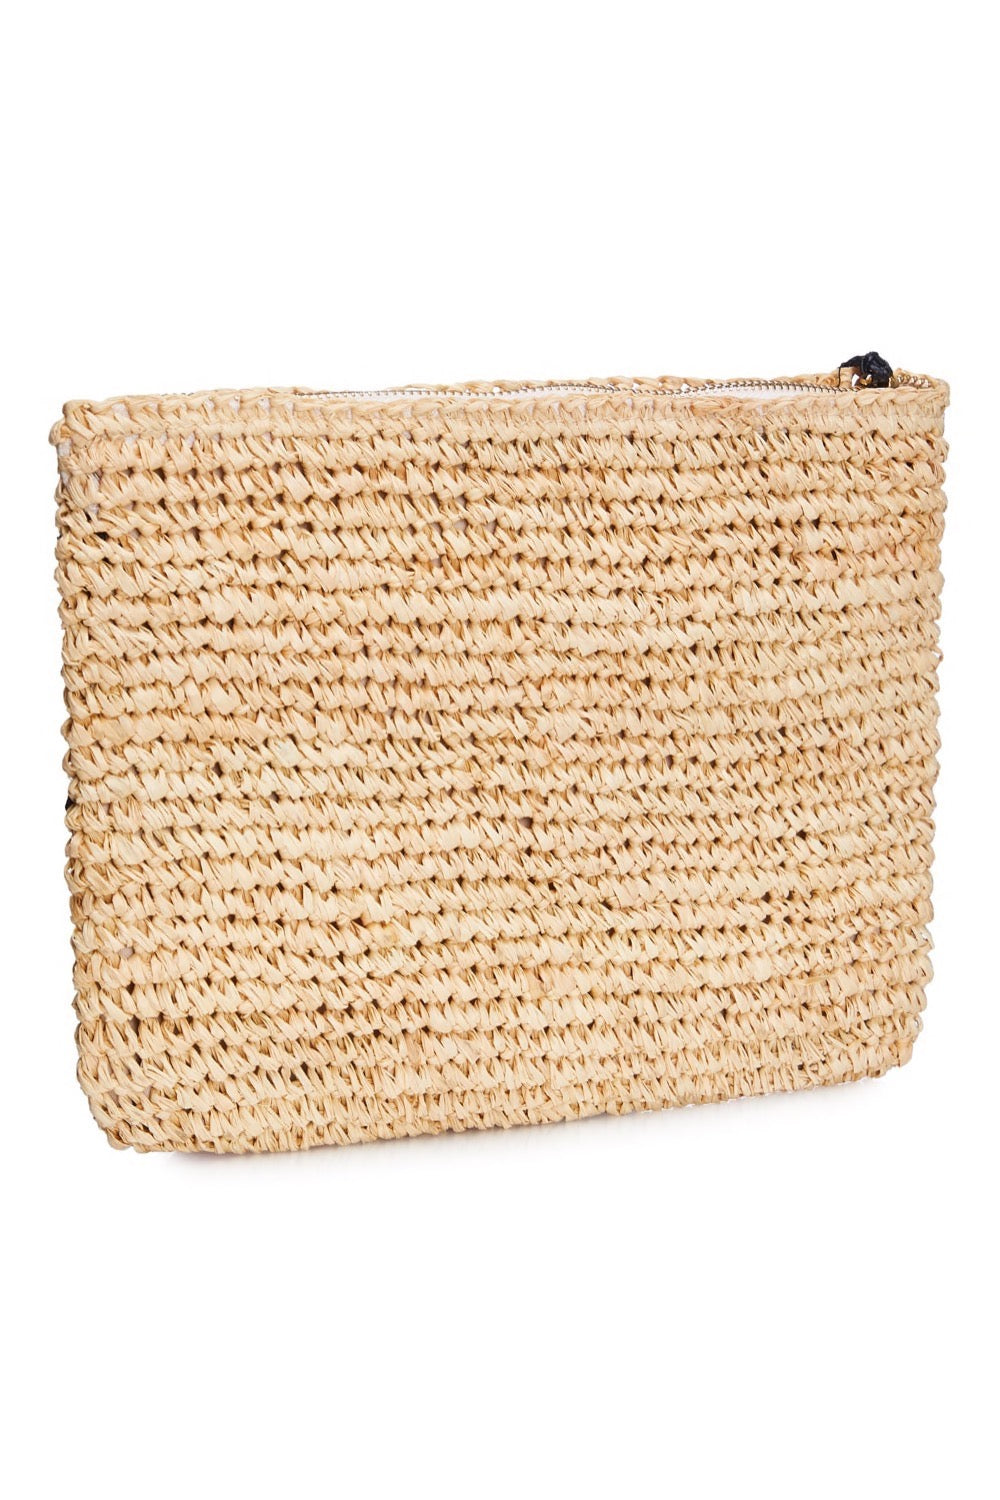 Leopard Embroidered Raffia Clutch - Black